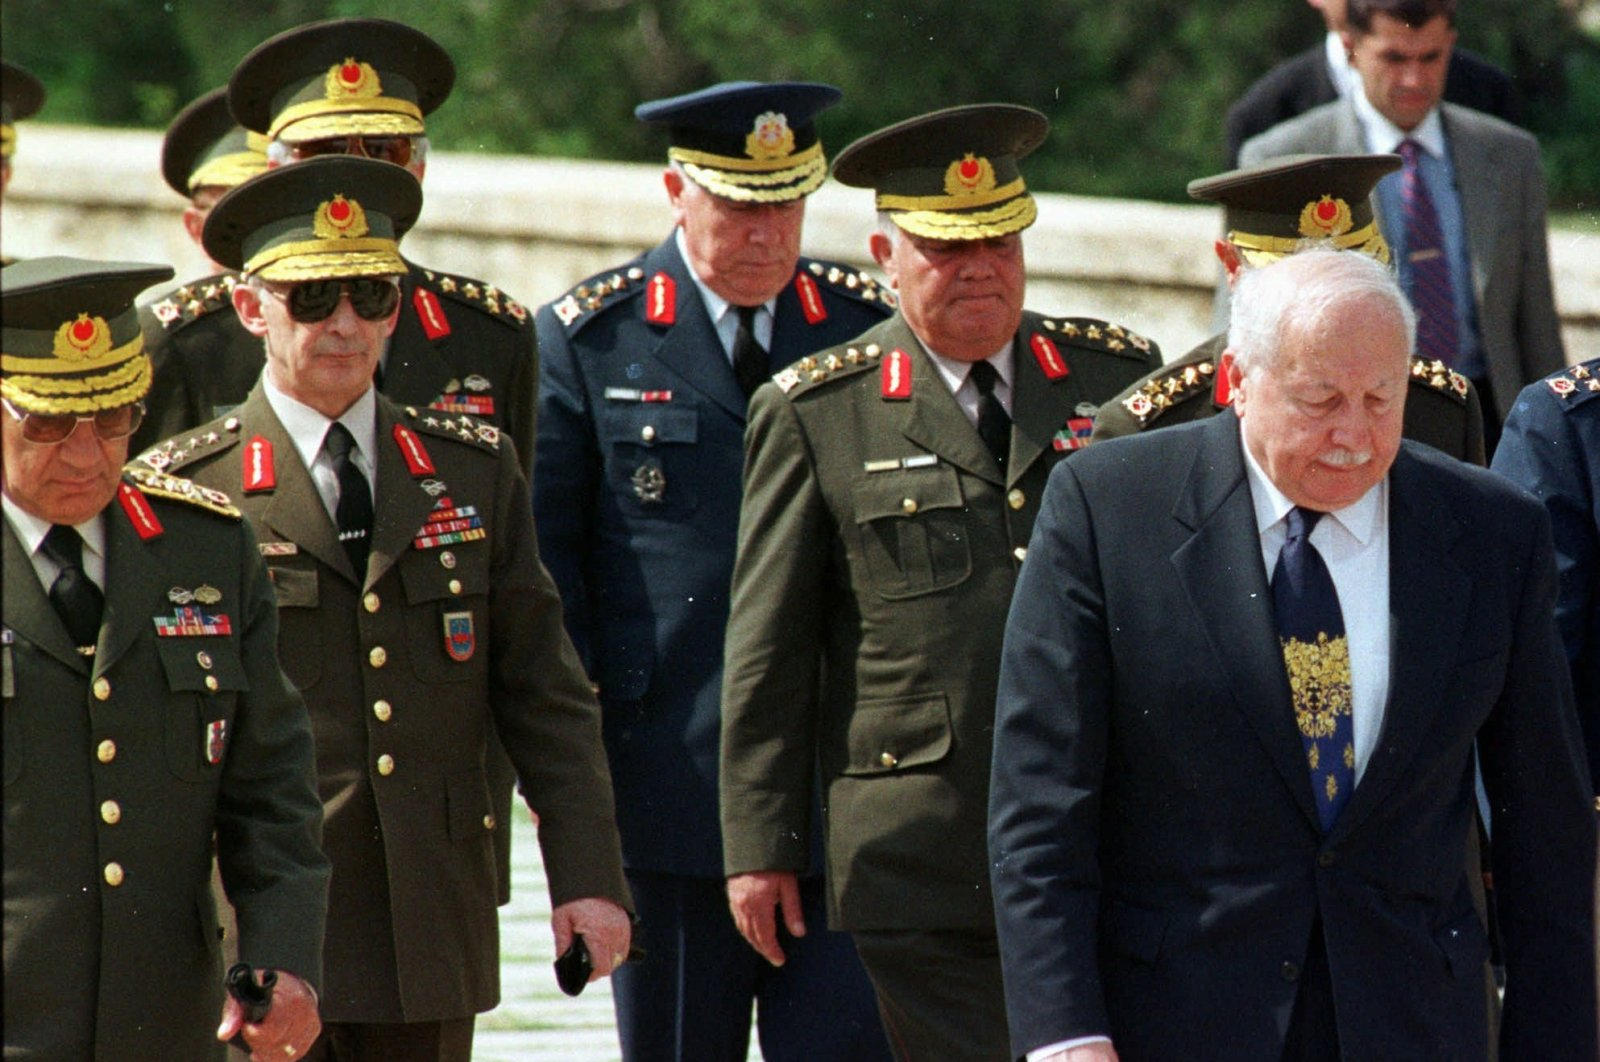 Then-Turkish Prime Minister Necmettin Erbakan, (R), and the country's top generals approach the mausoleum of Mustafa Kemal Atatürk, founder of the Turkish republic, May 26, 1997. (AP Photo)